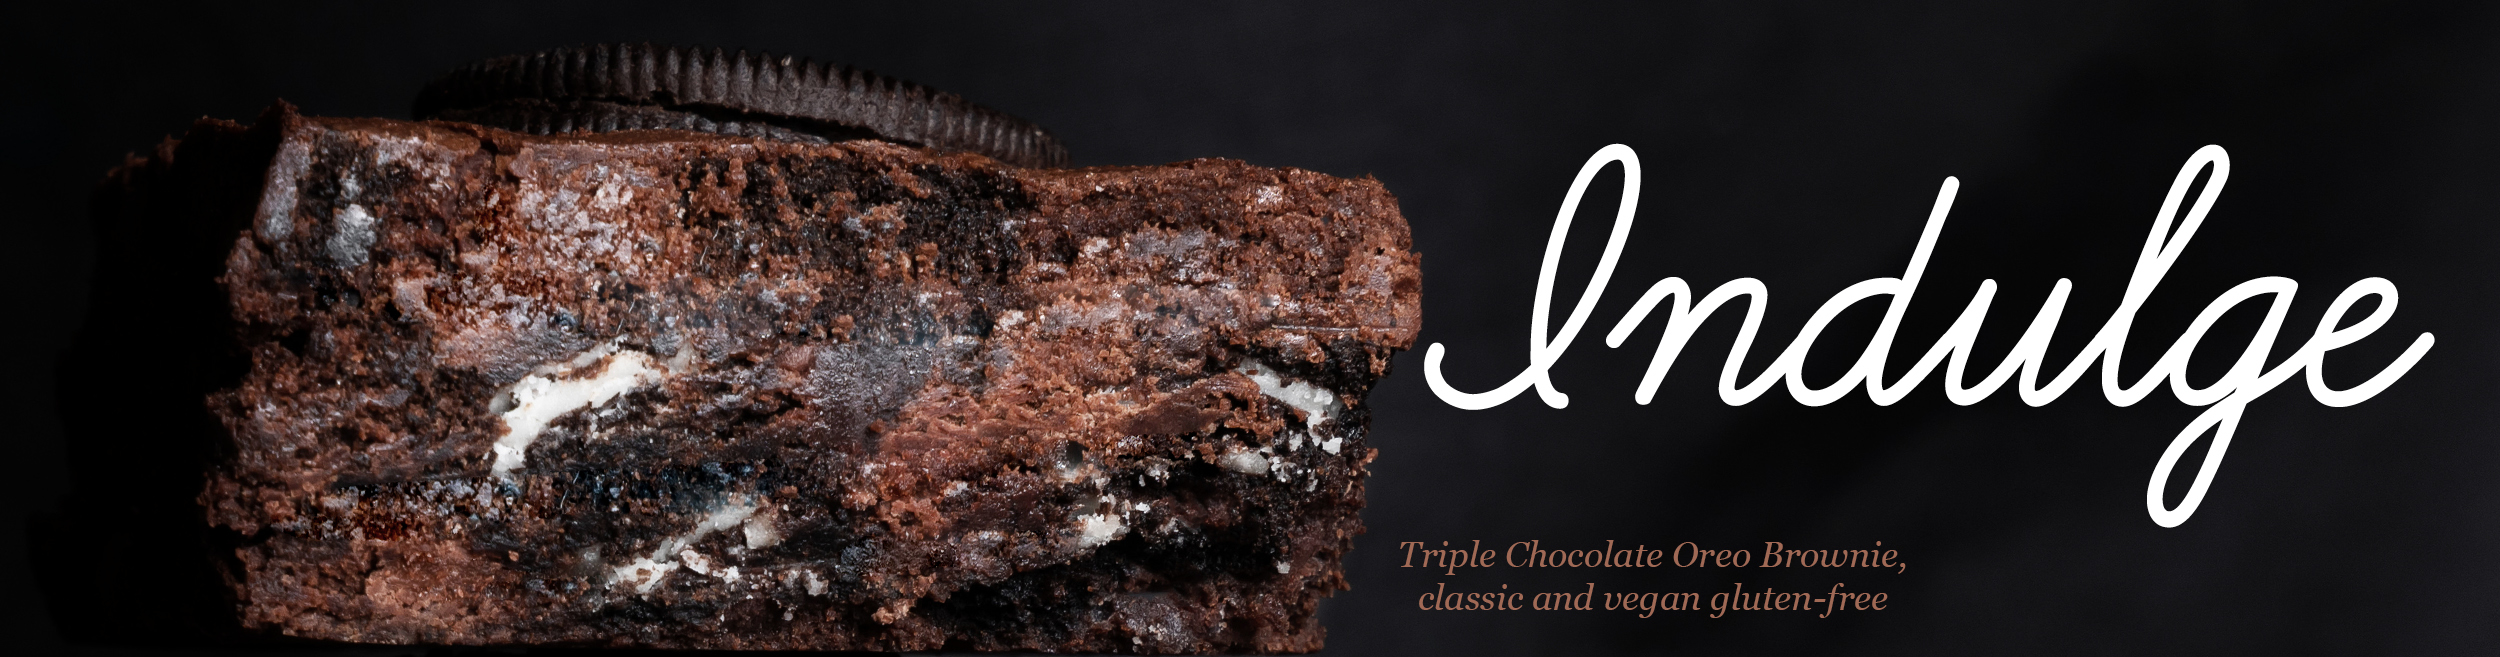 Oreo_Brownie_Indulge_2021